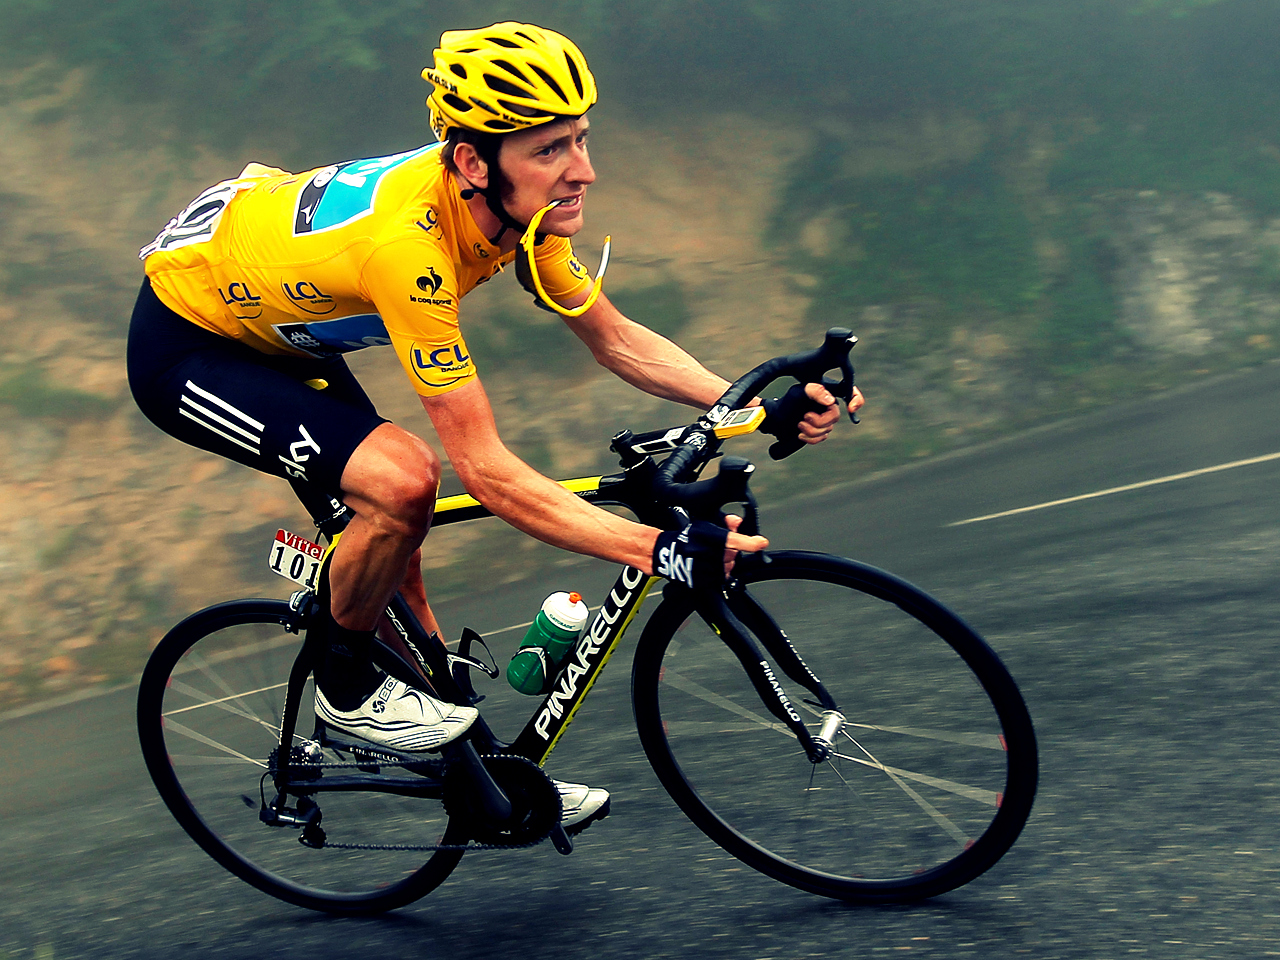 Images of Cycling  | 1280x960